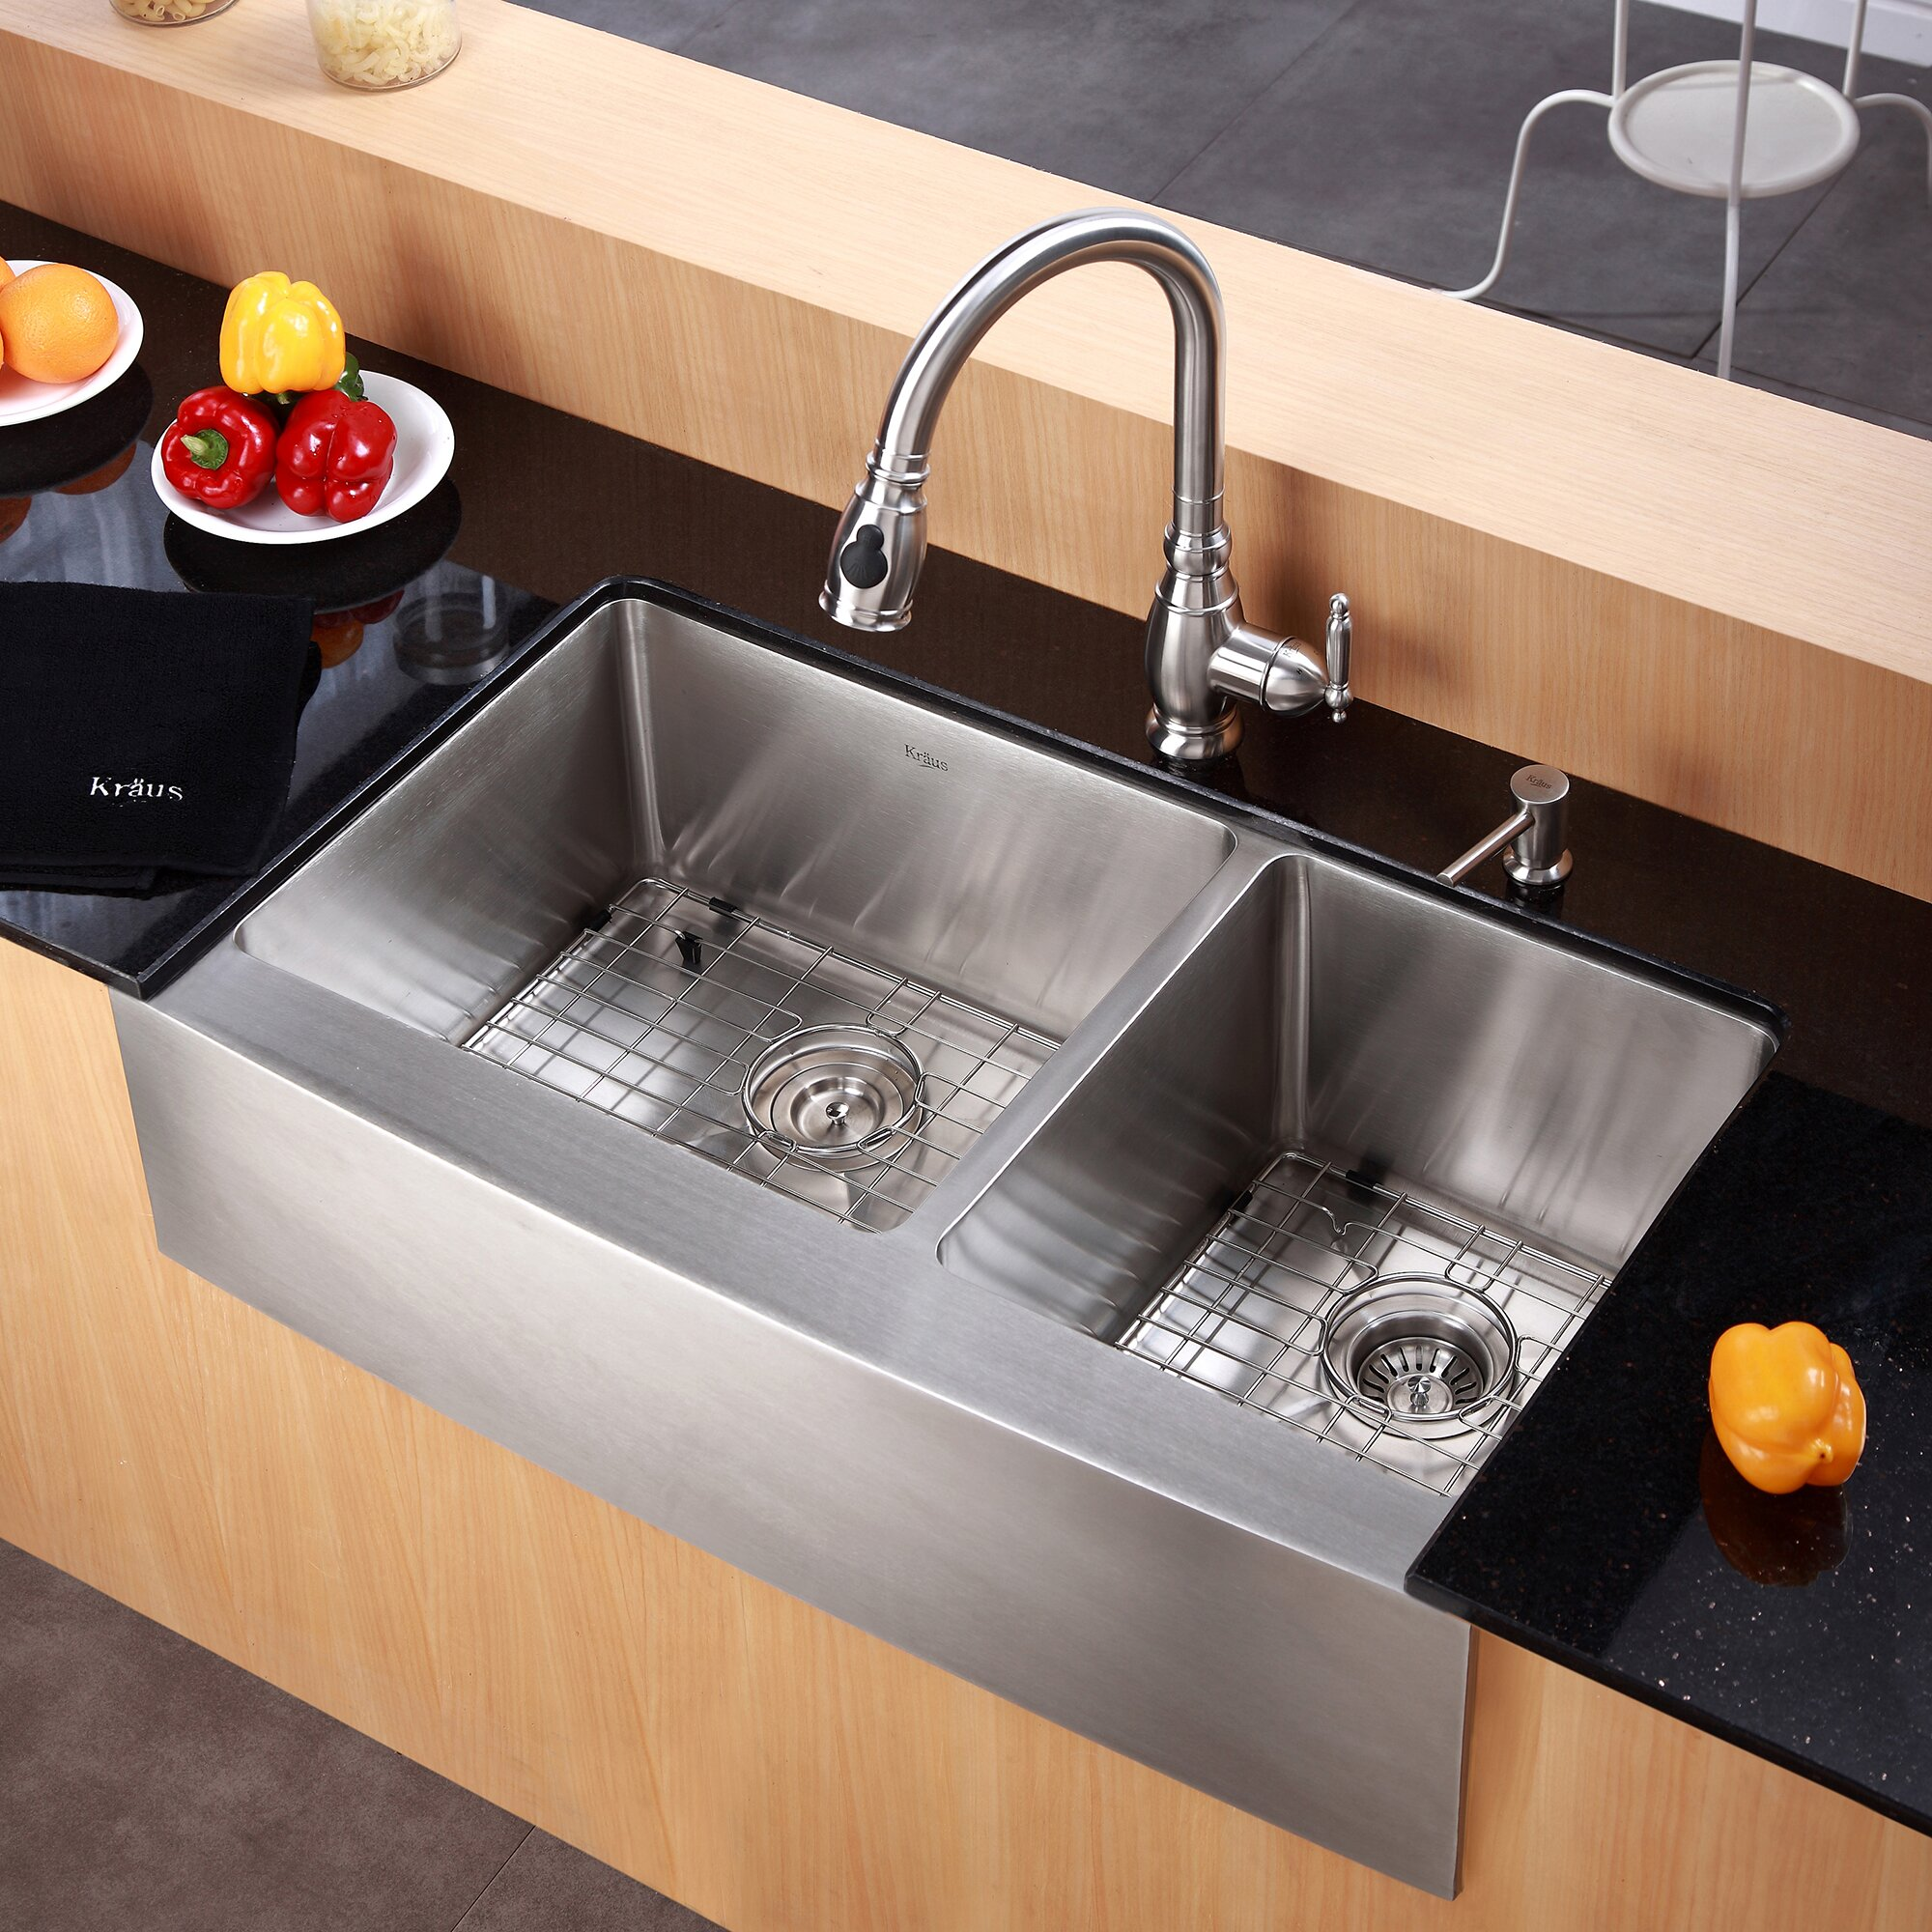 36 Kitchen Sink : Farmhouse 36